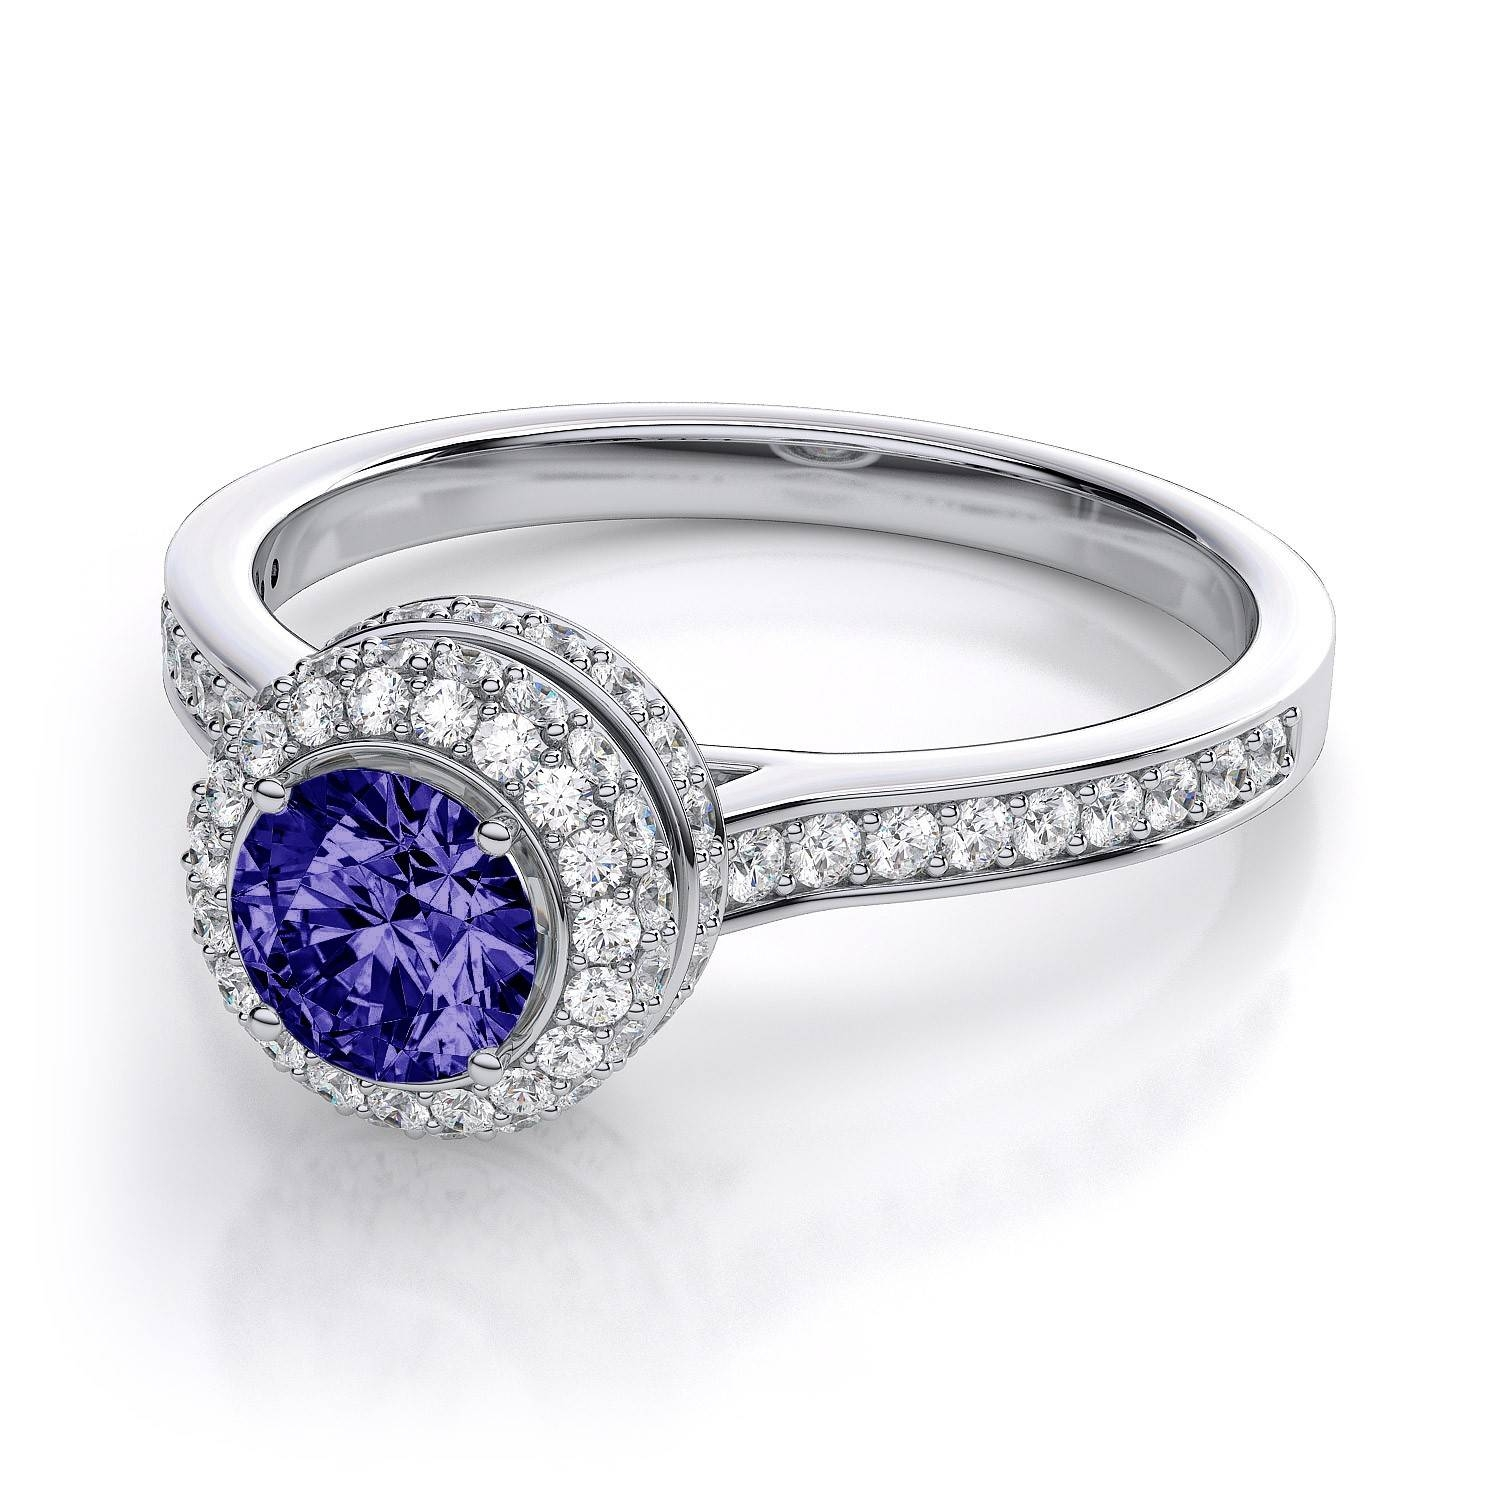 Cirque Halo Tanzanite And Diamond Engagement Ring In 14k White Gold Throughout Tanzanite White Gold Engagement Rings (View 5 of 15)